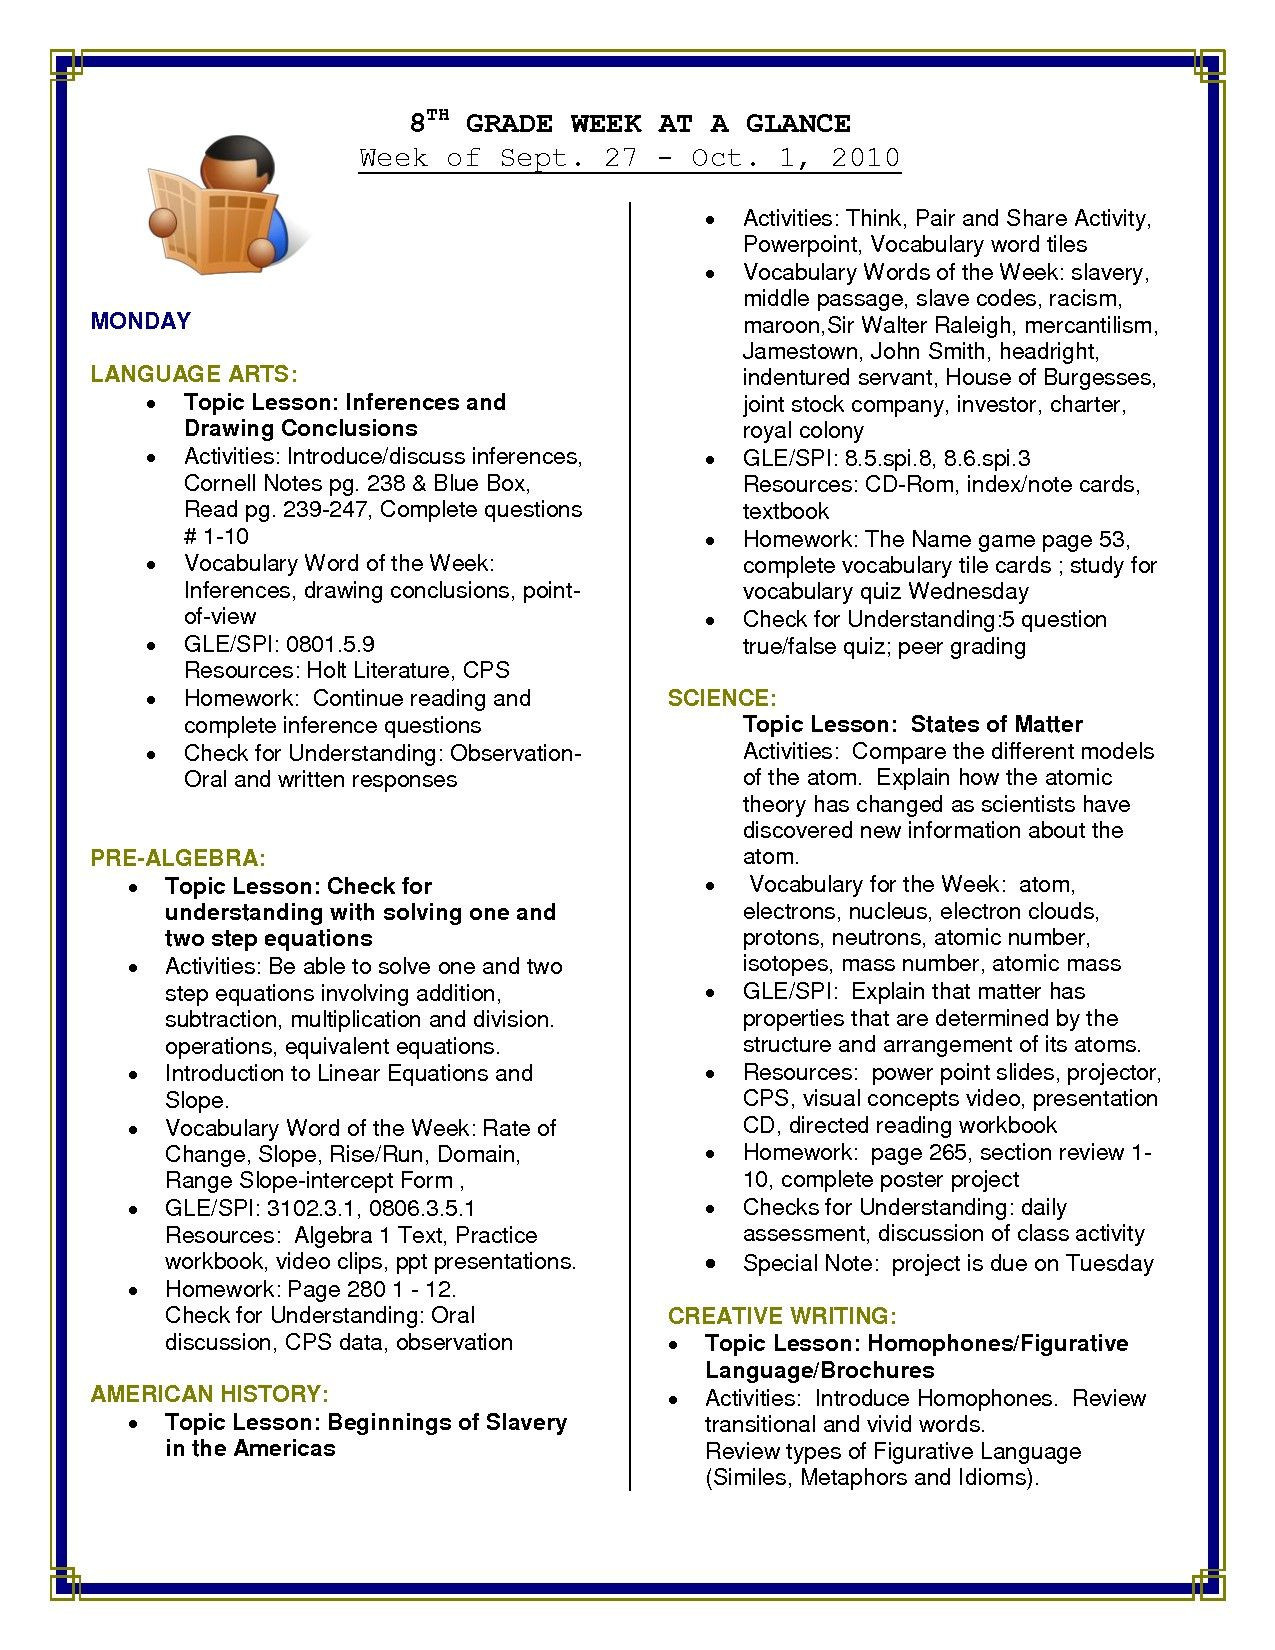 Reading Comprehension Worksheets 7th Grade 8th Grade Reading Prehension Worksheets